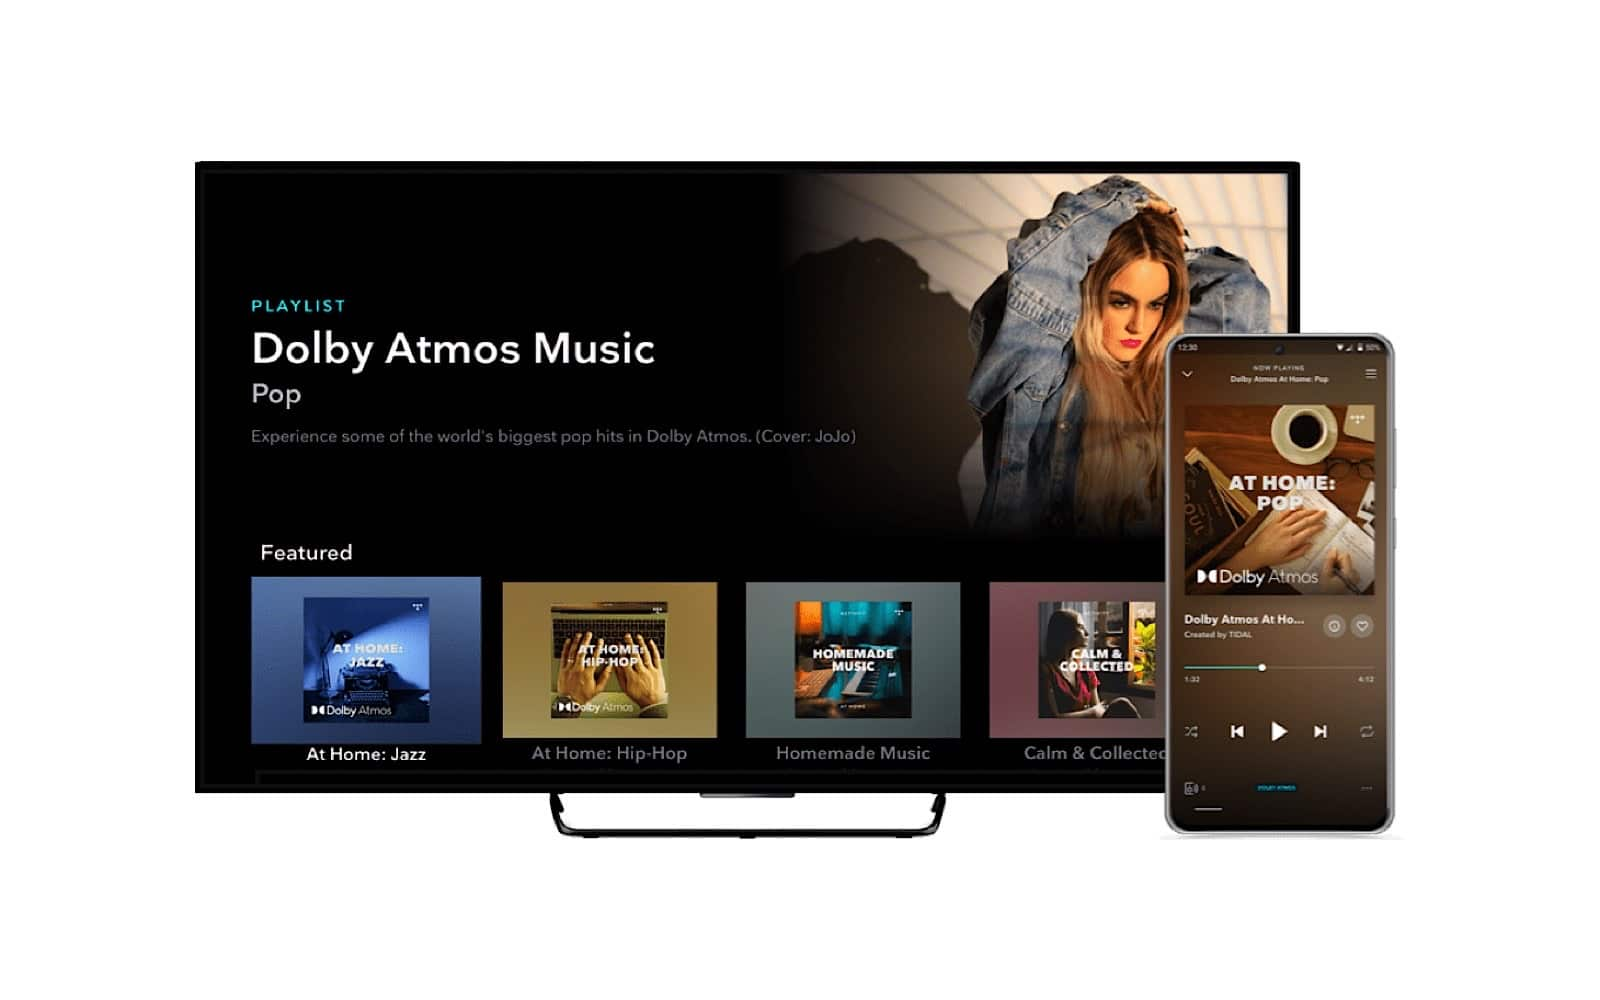 Tidal supports Dolby Atmos on TVs